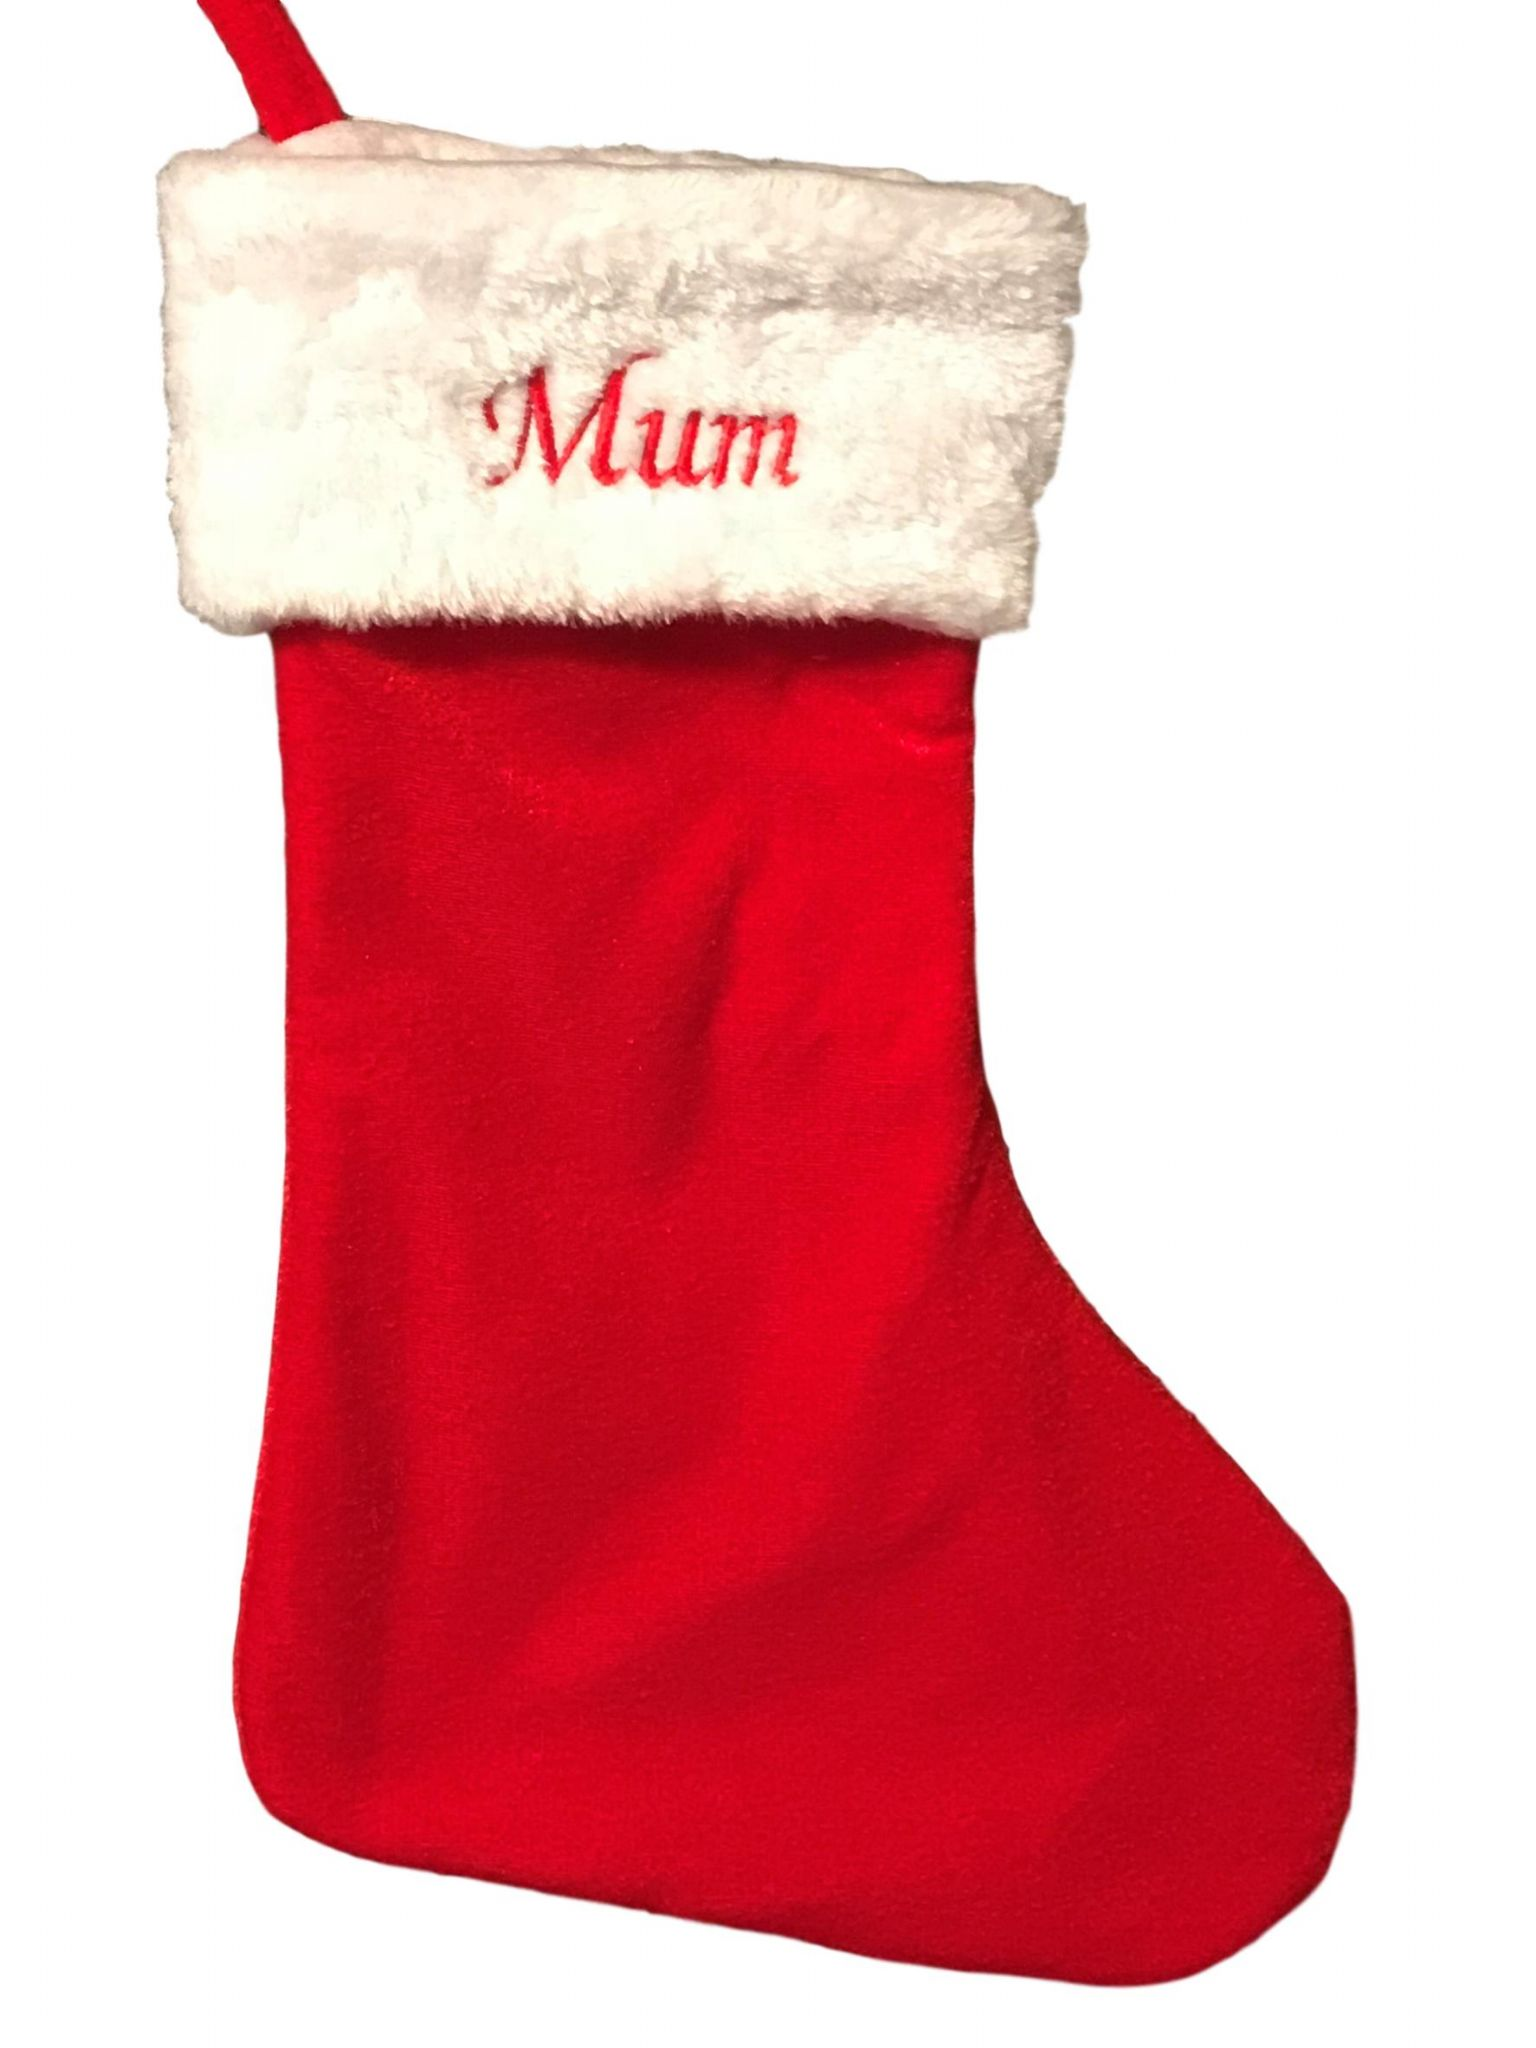 Luxury Christmas Stockings Uk.Personalised Luxury Velvet Christmas Stocking